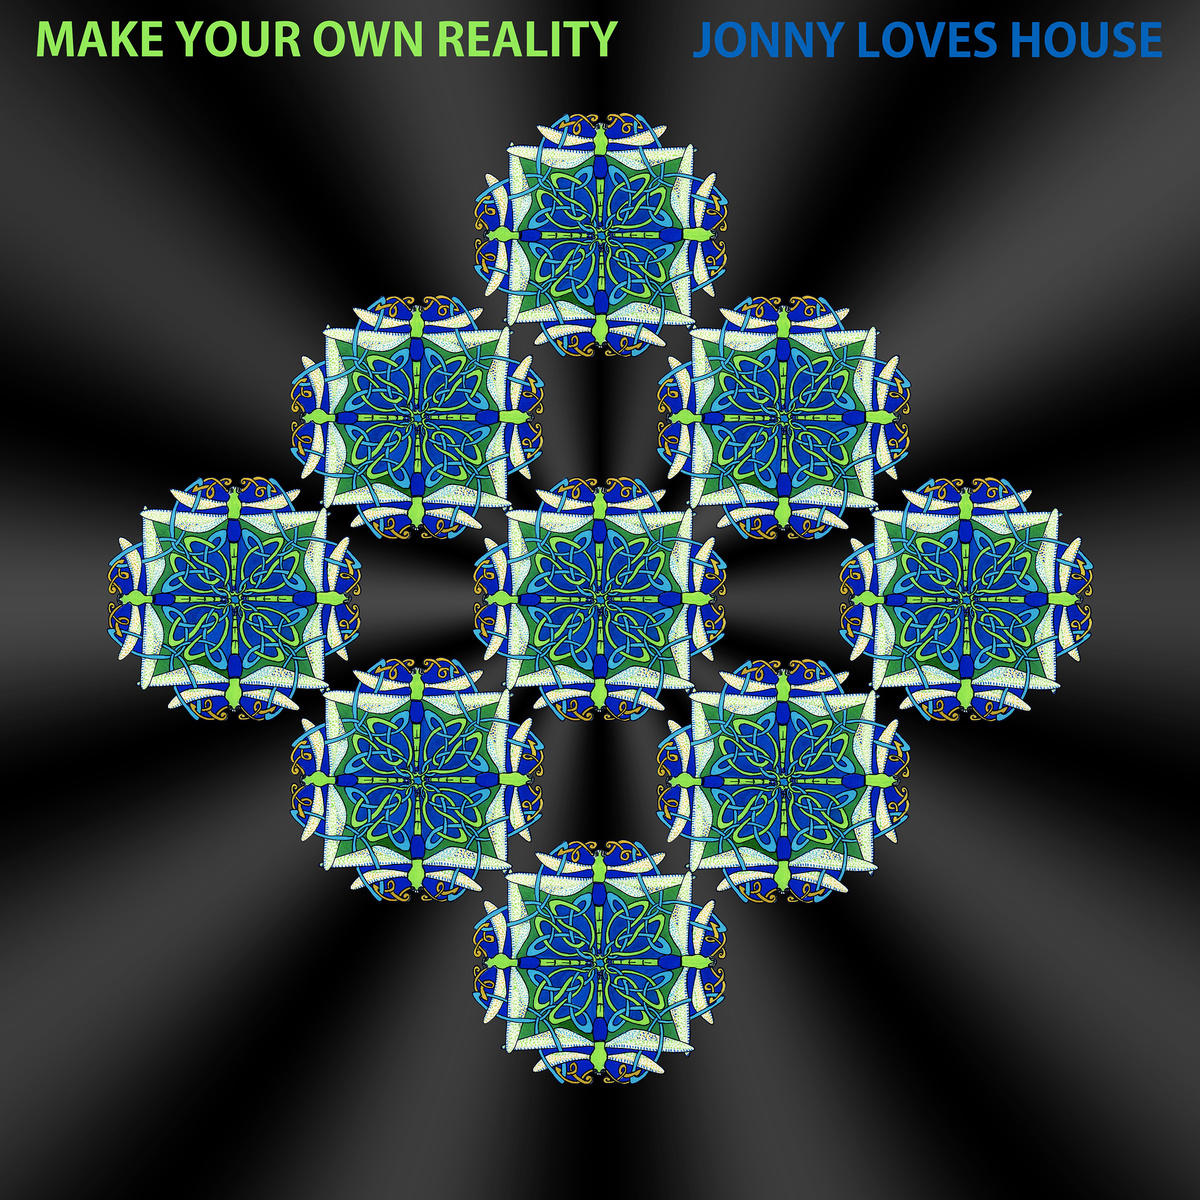 Jonny Loves House - Make Your Own Reality [JLH 020]